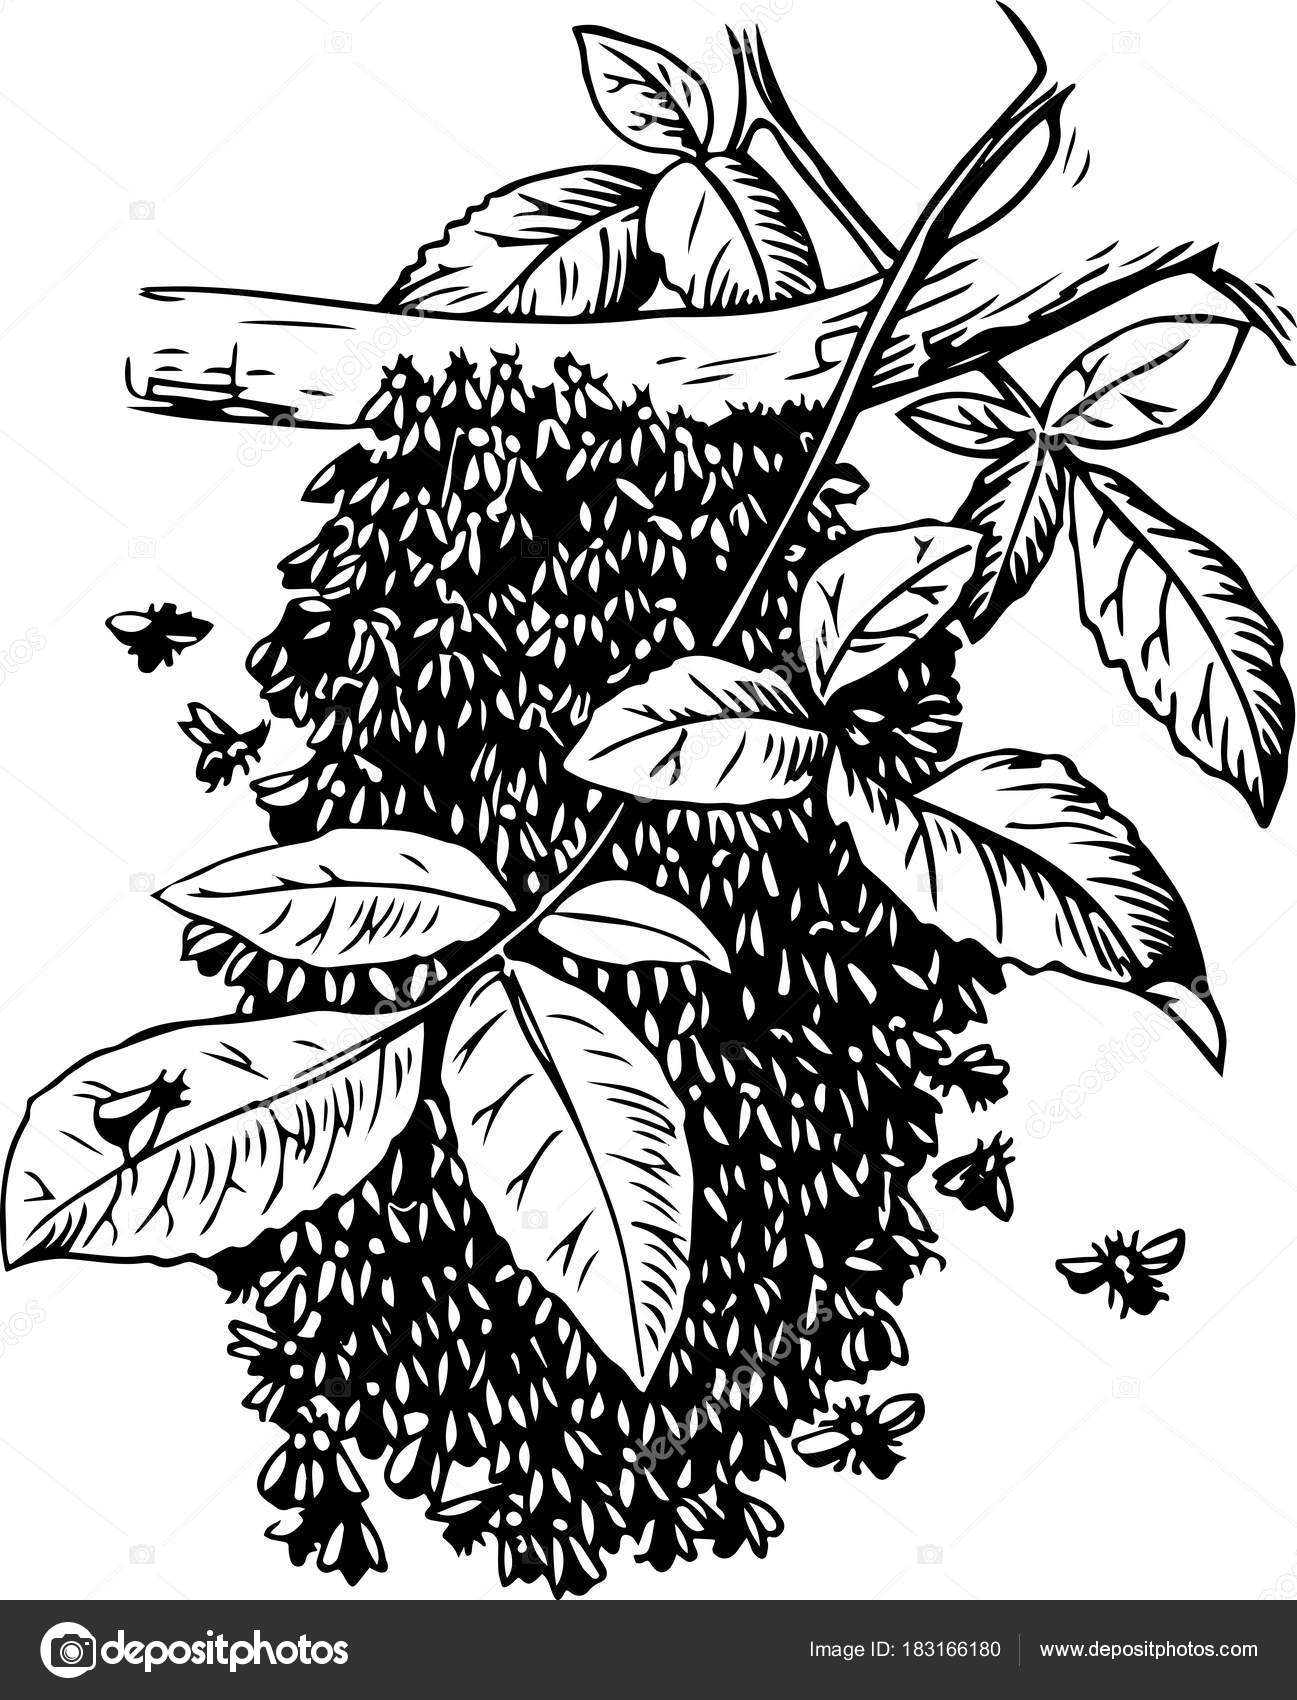 Bee Hive drawing — Stock Photo © serg-eril #183166180